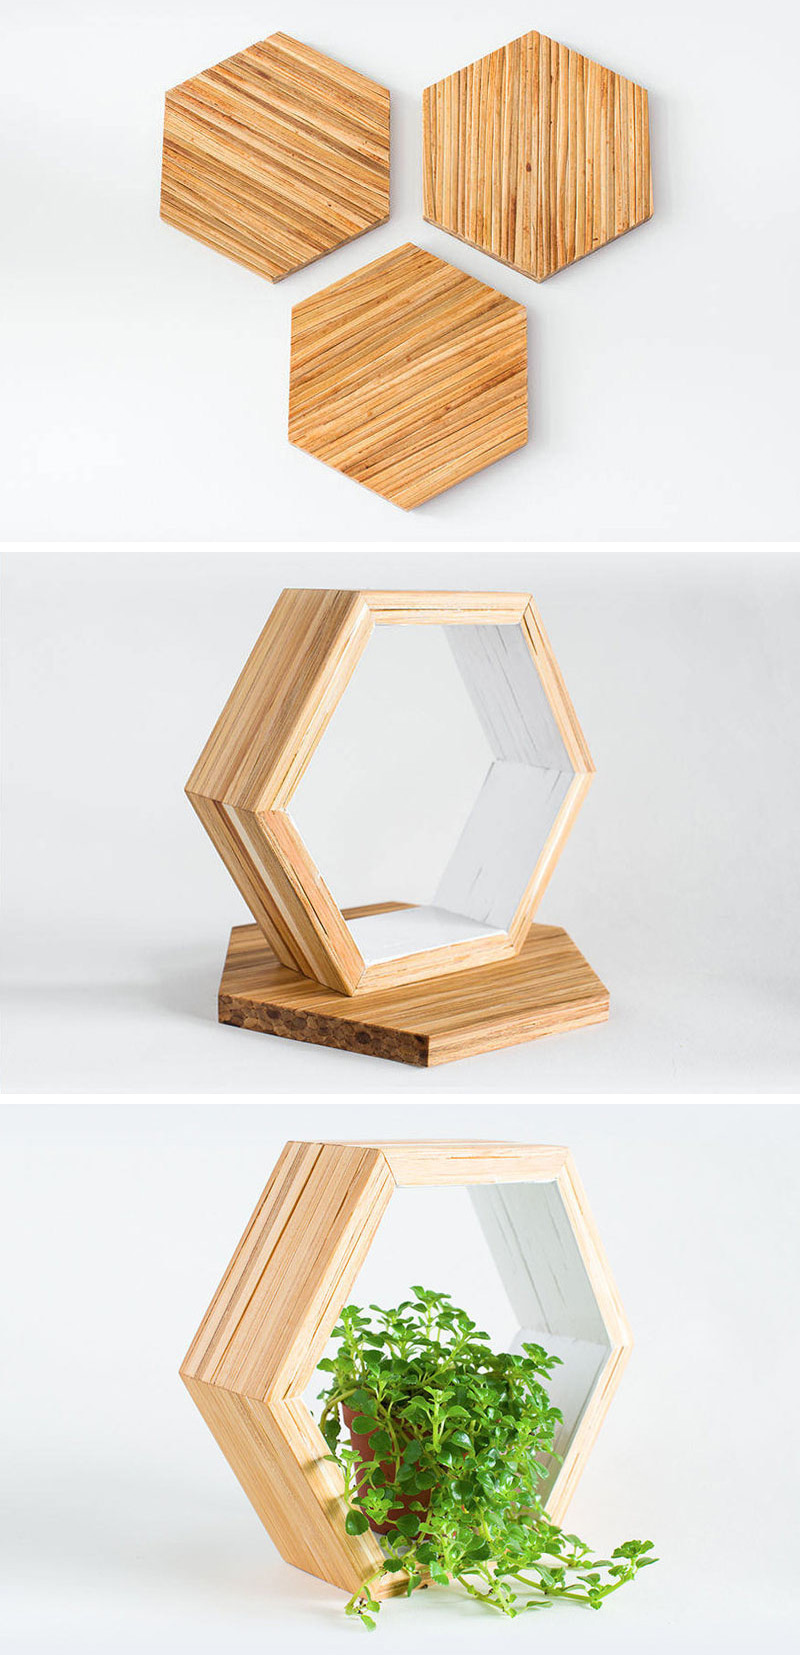 recycled-chopstick-wood-honeycomb-shelving-100517-909-03